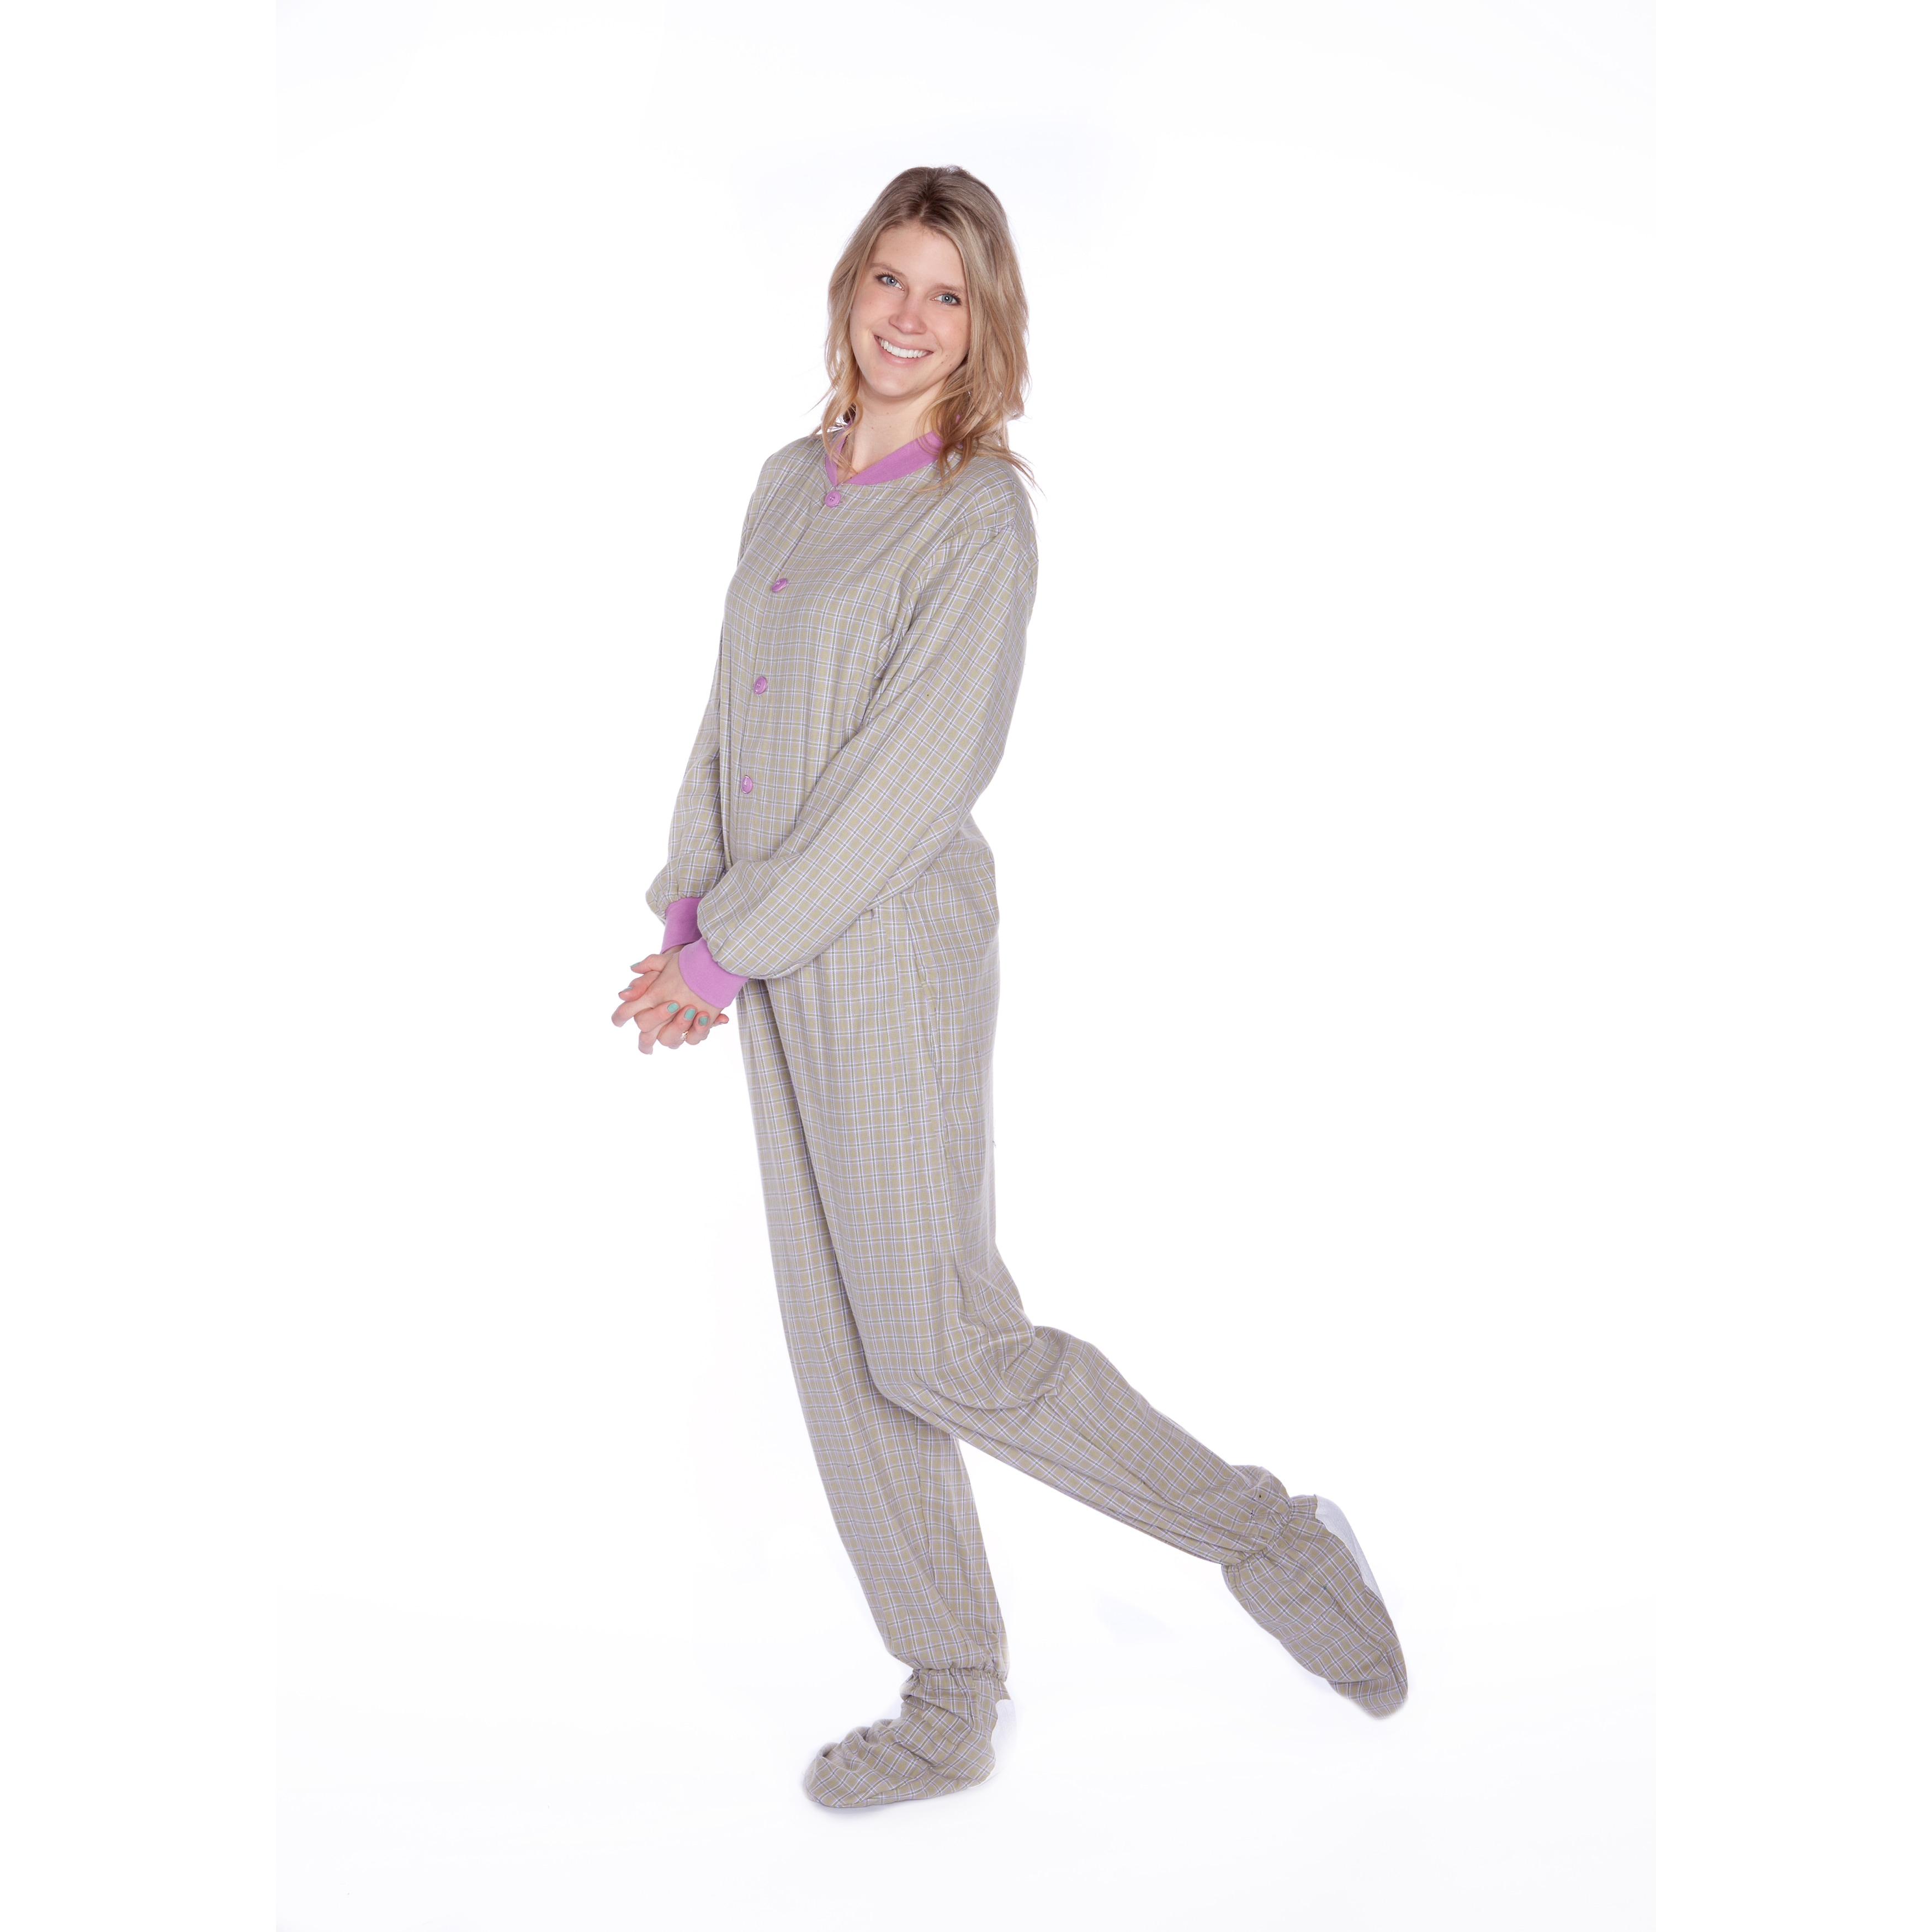 Shop Seafoam Green   Lavender Plaid Cotton Flannel Adult Footed Pajamas by Big  Feet PJs - On Sale - Free Shipping Today - Overstock - 10755695 b7f04f874